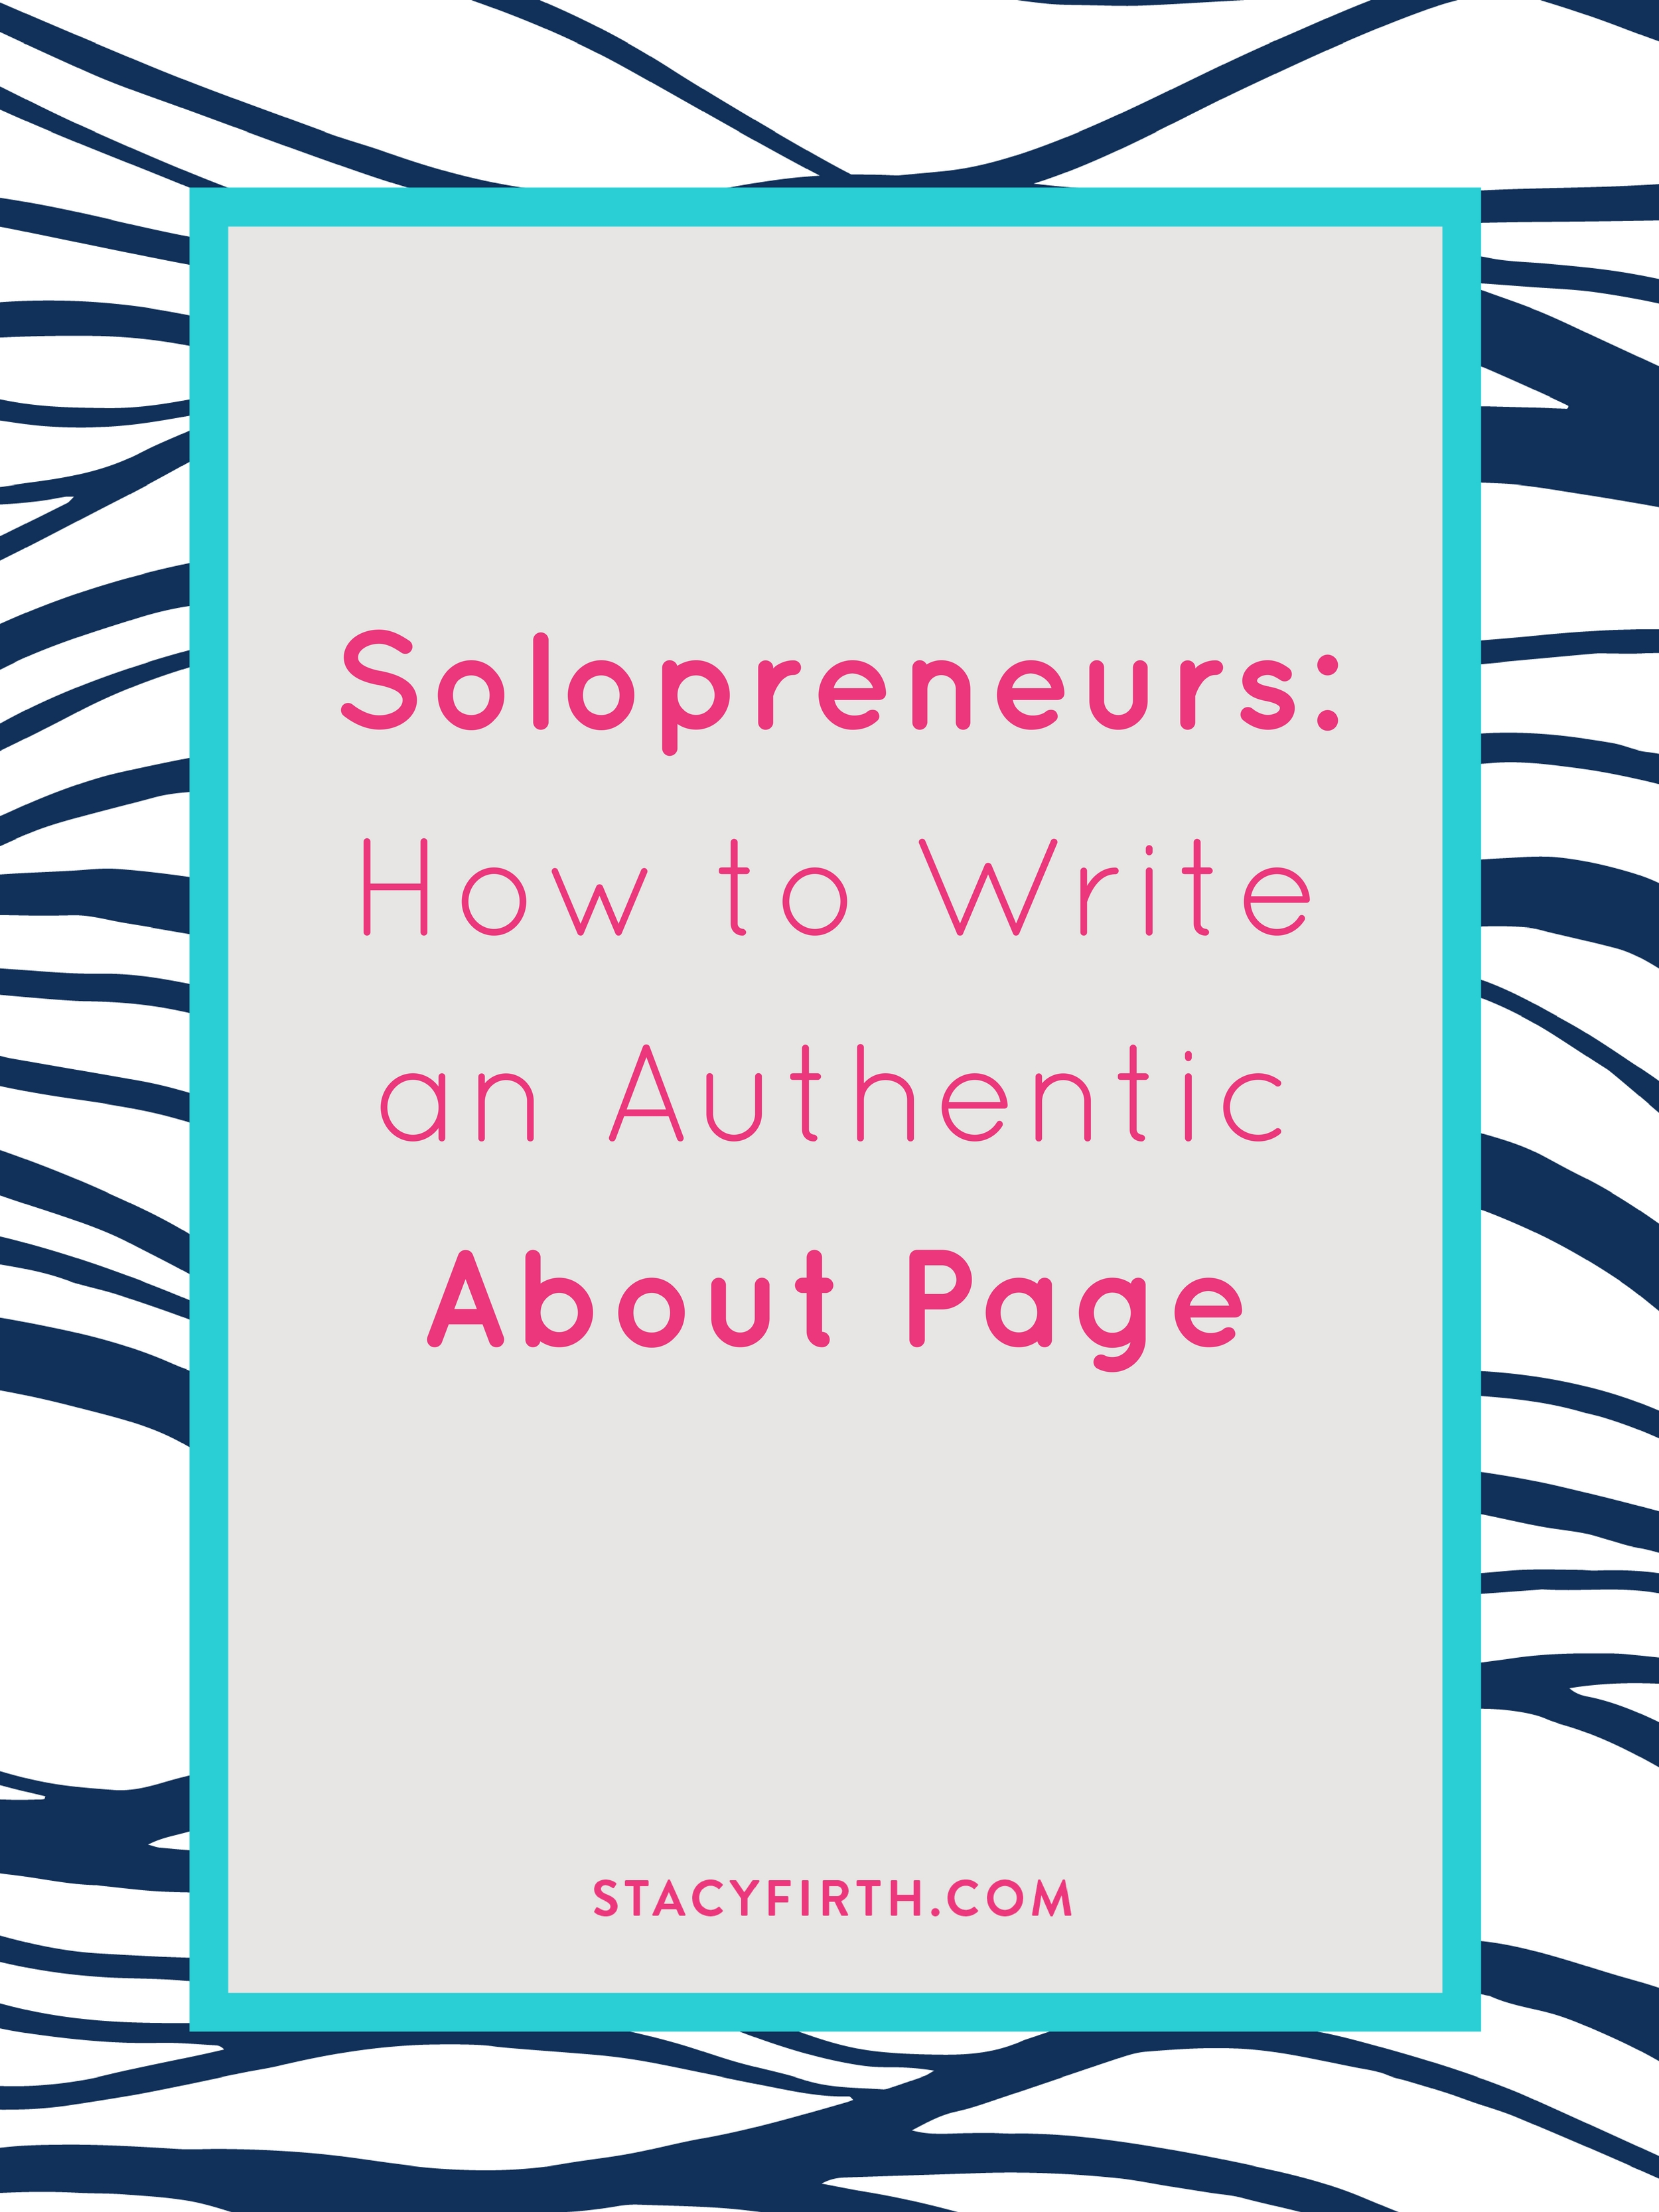 Solopreneurs: How to Write an Authentic About Page